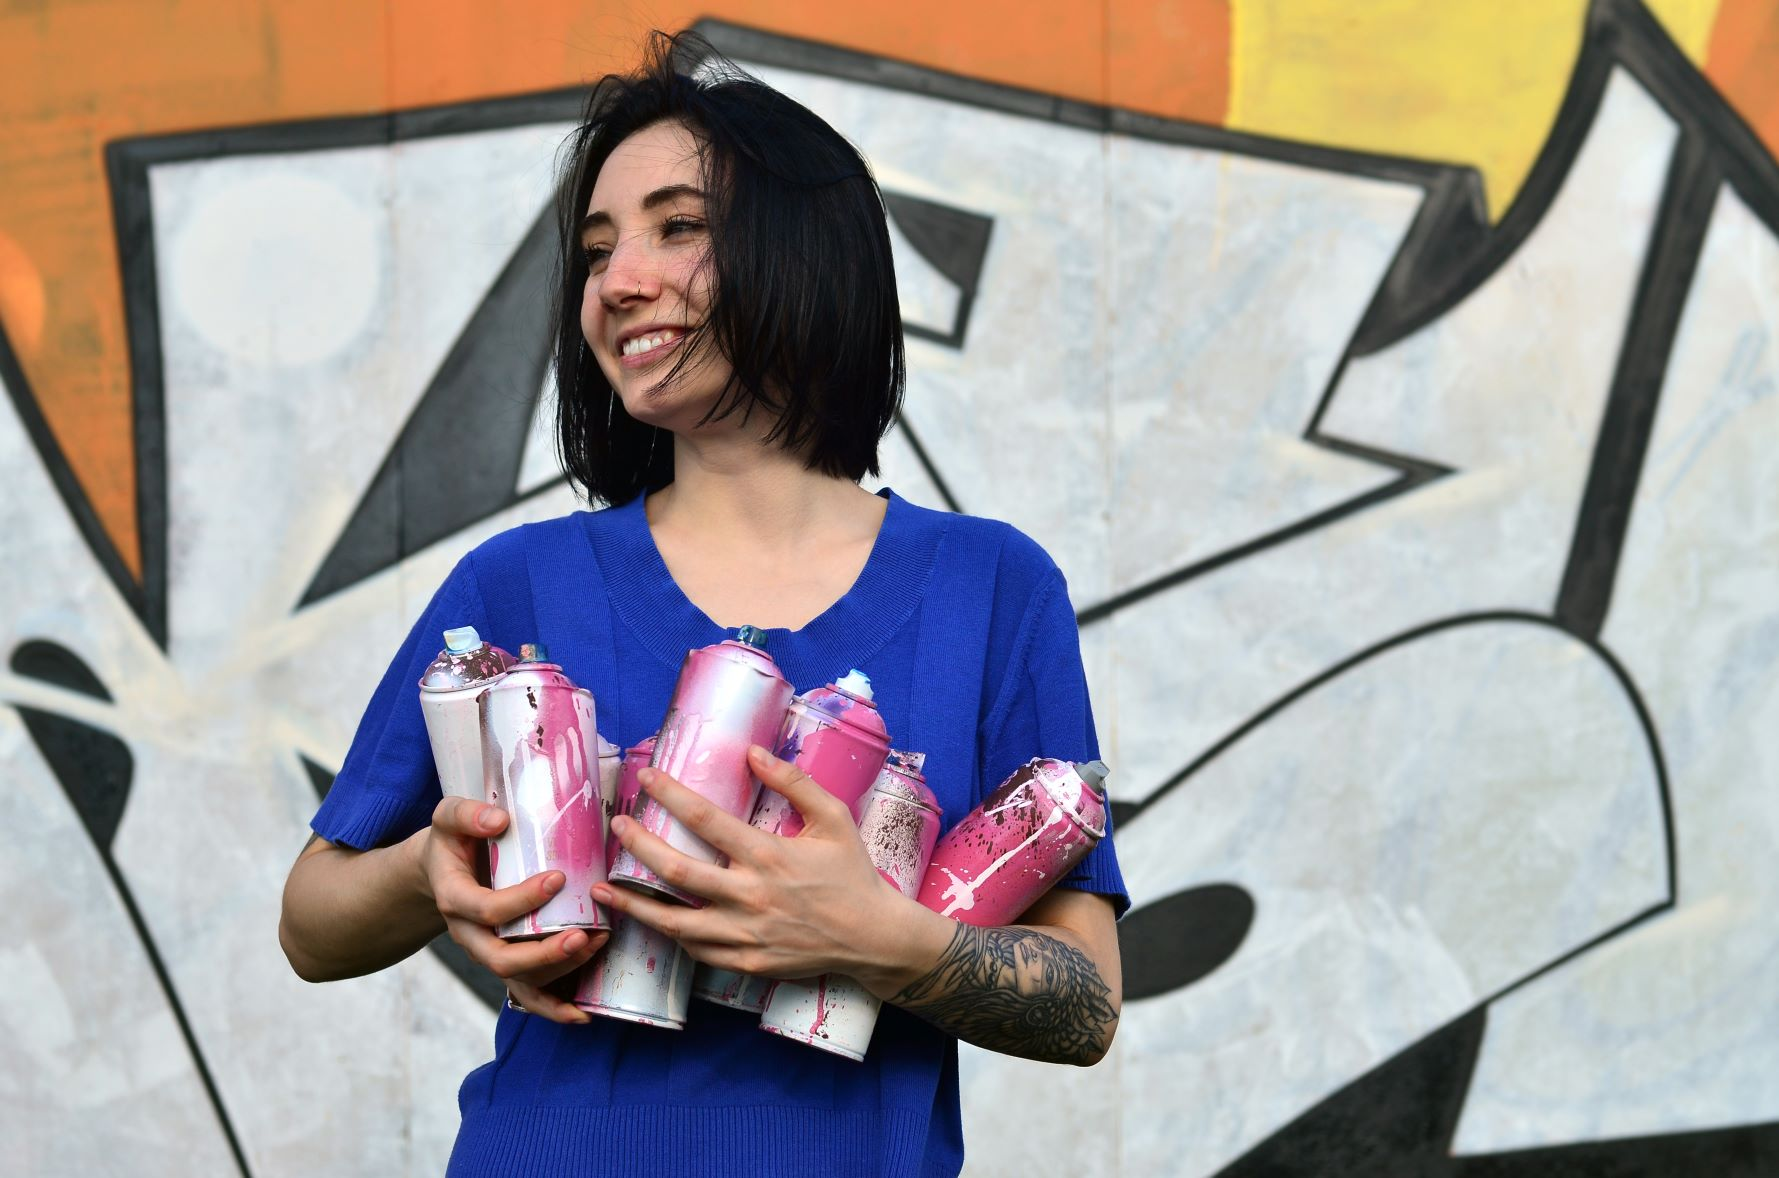 Woman holding aerosol spray paint cans